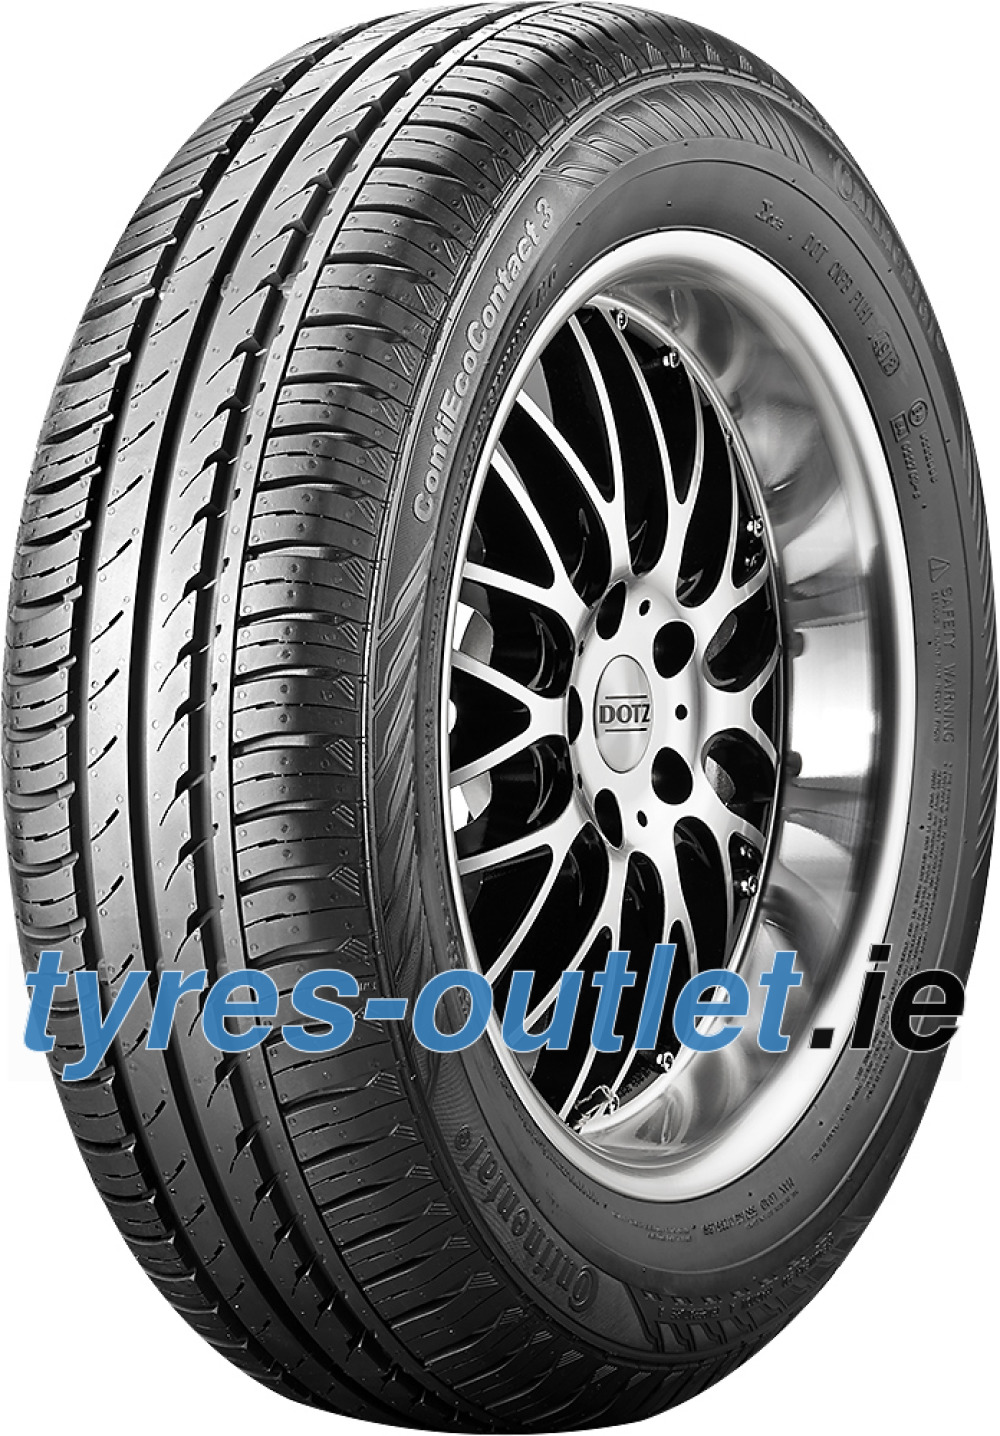 Continental EcoContact 3 ( 175/65 R14 86T XL )